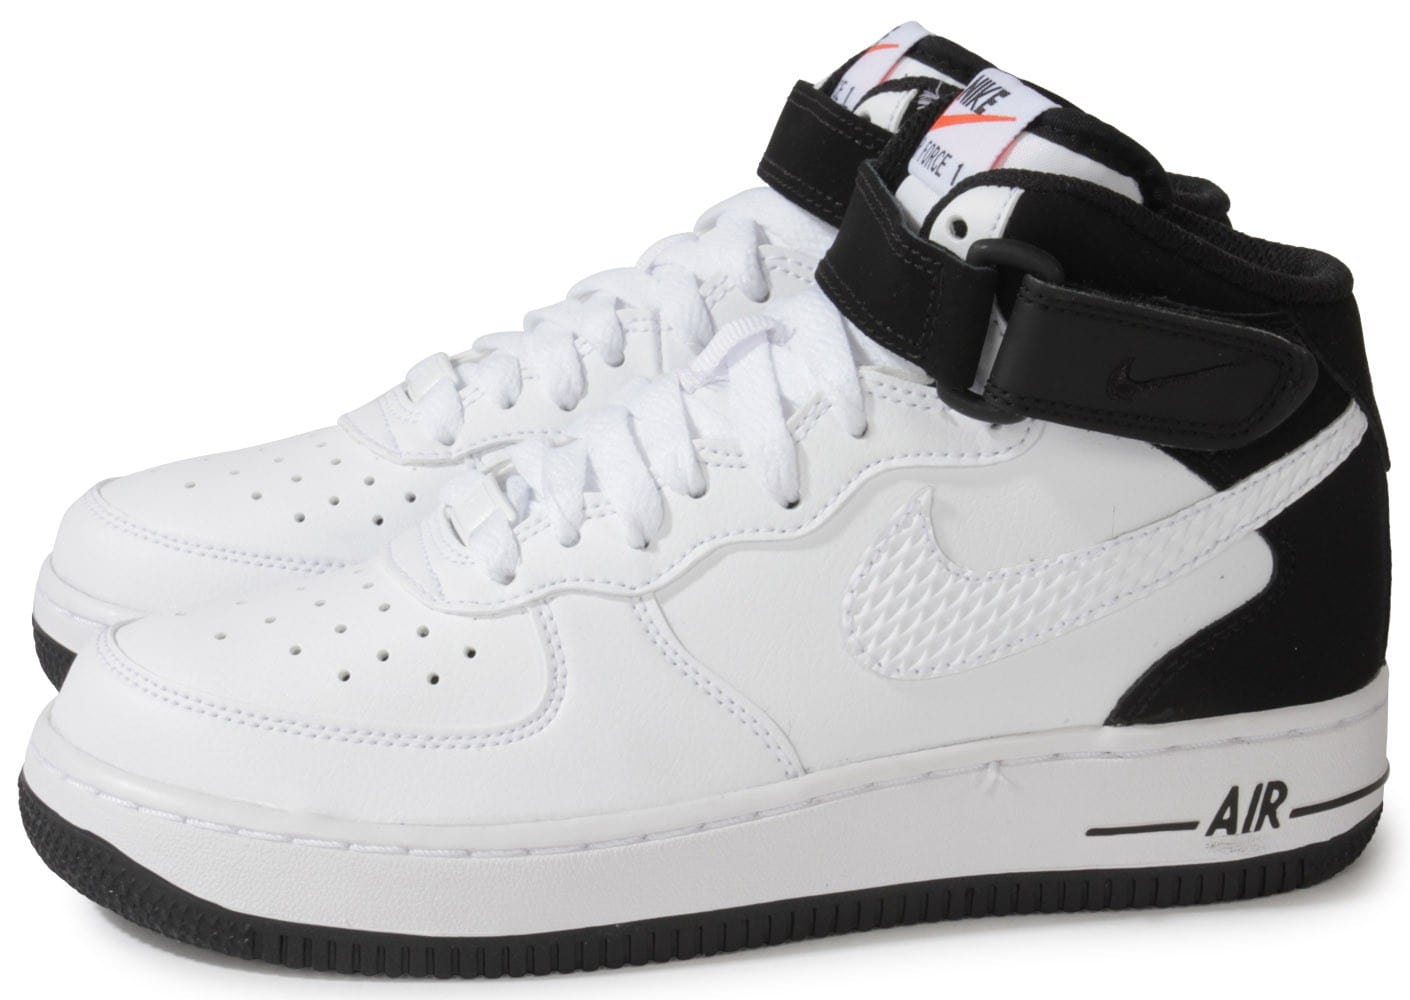 nike air force 1 mid junior blanche et noire chaussures chaussures chausport. Black Bedroom Furniture Sets. Home Design Ideas